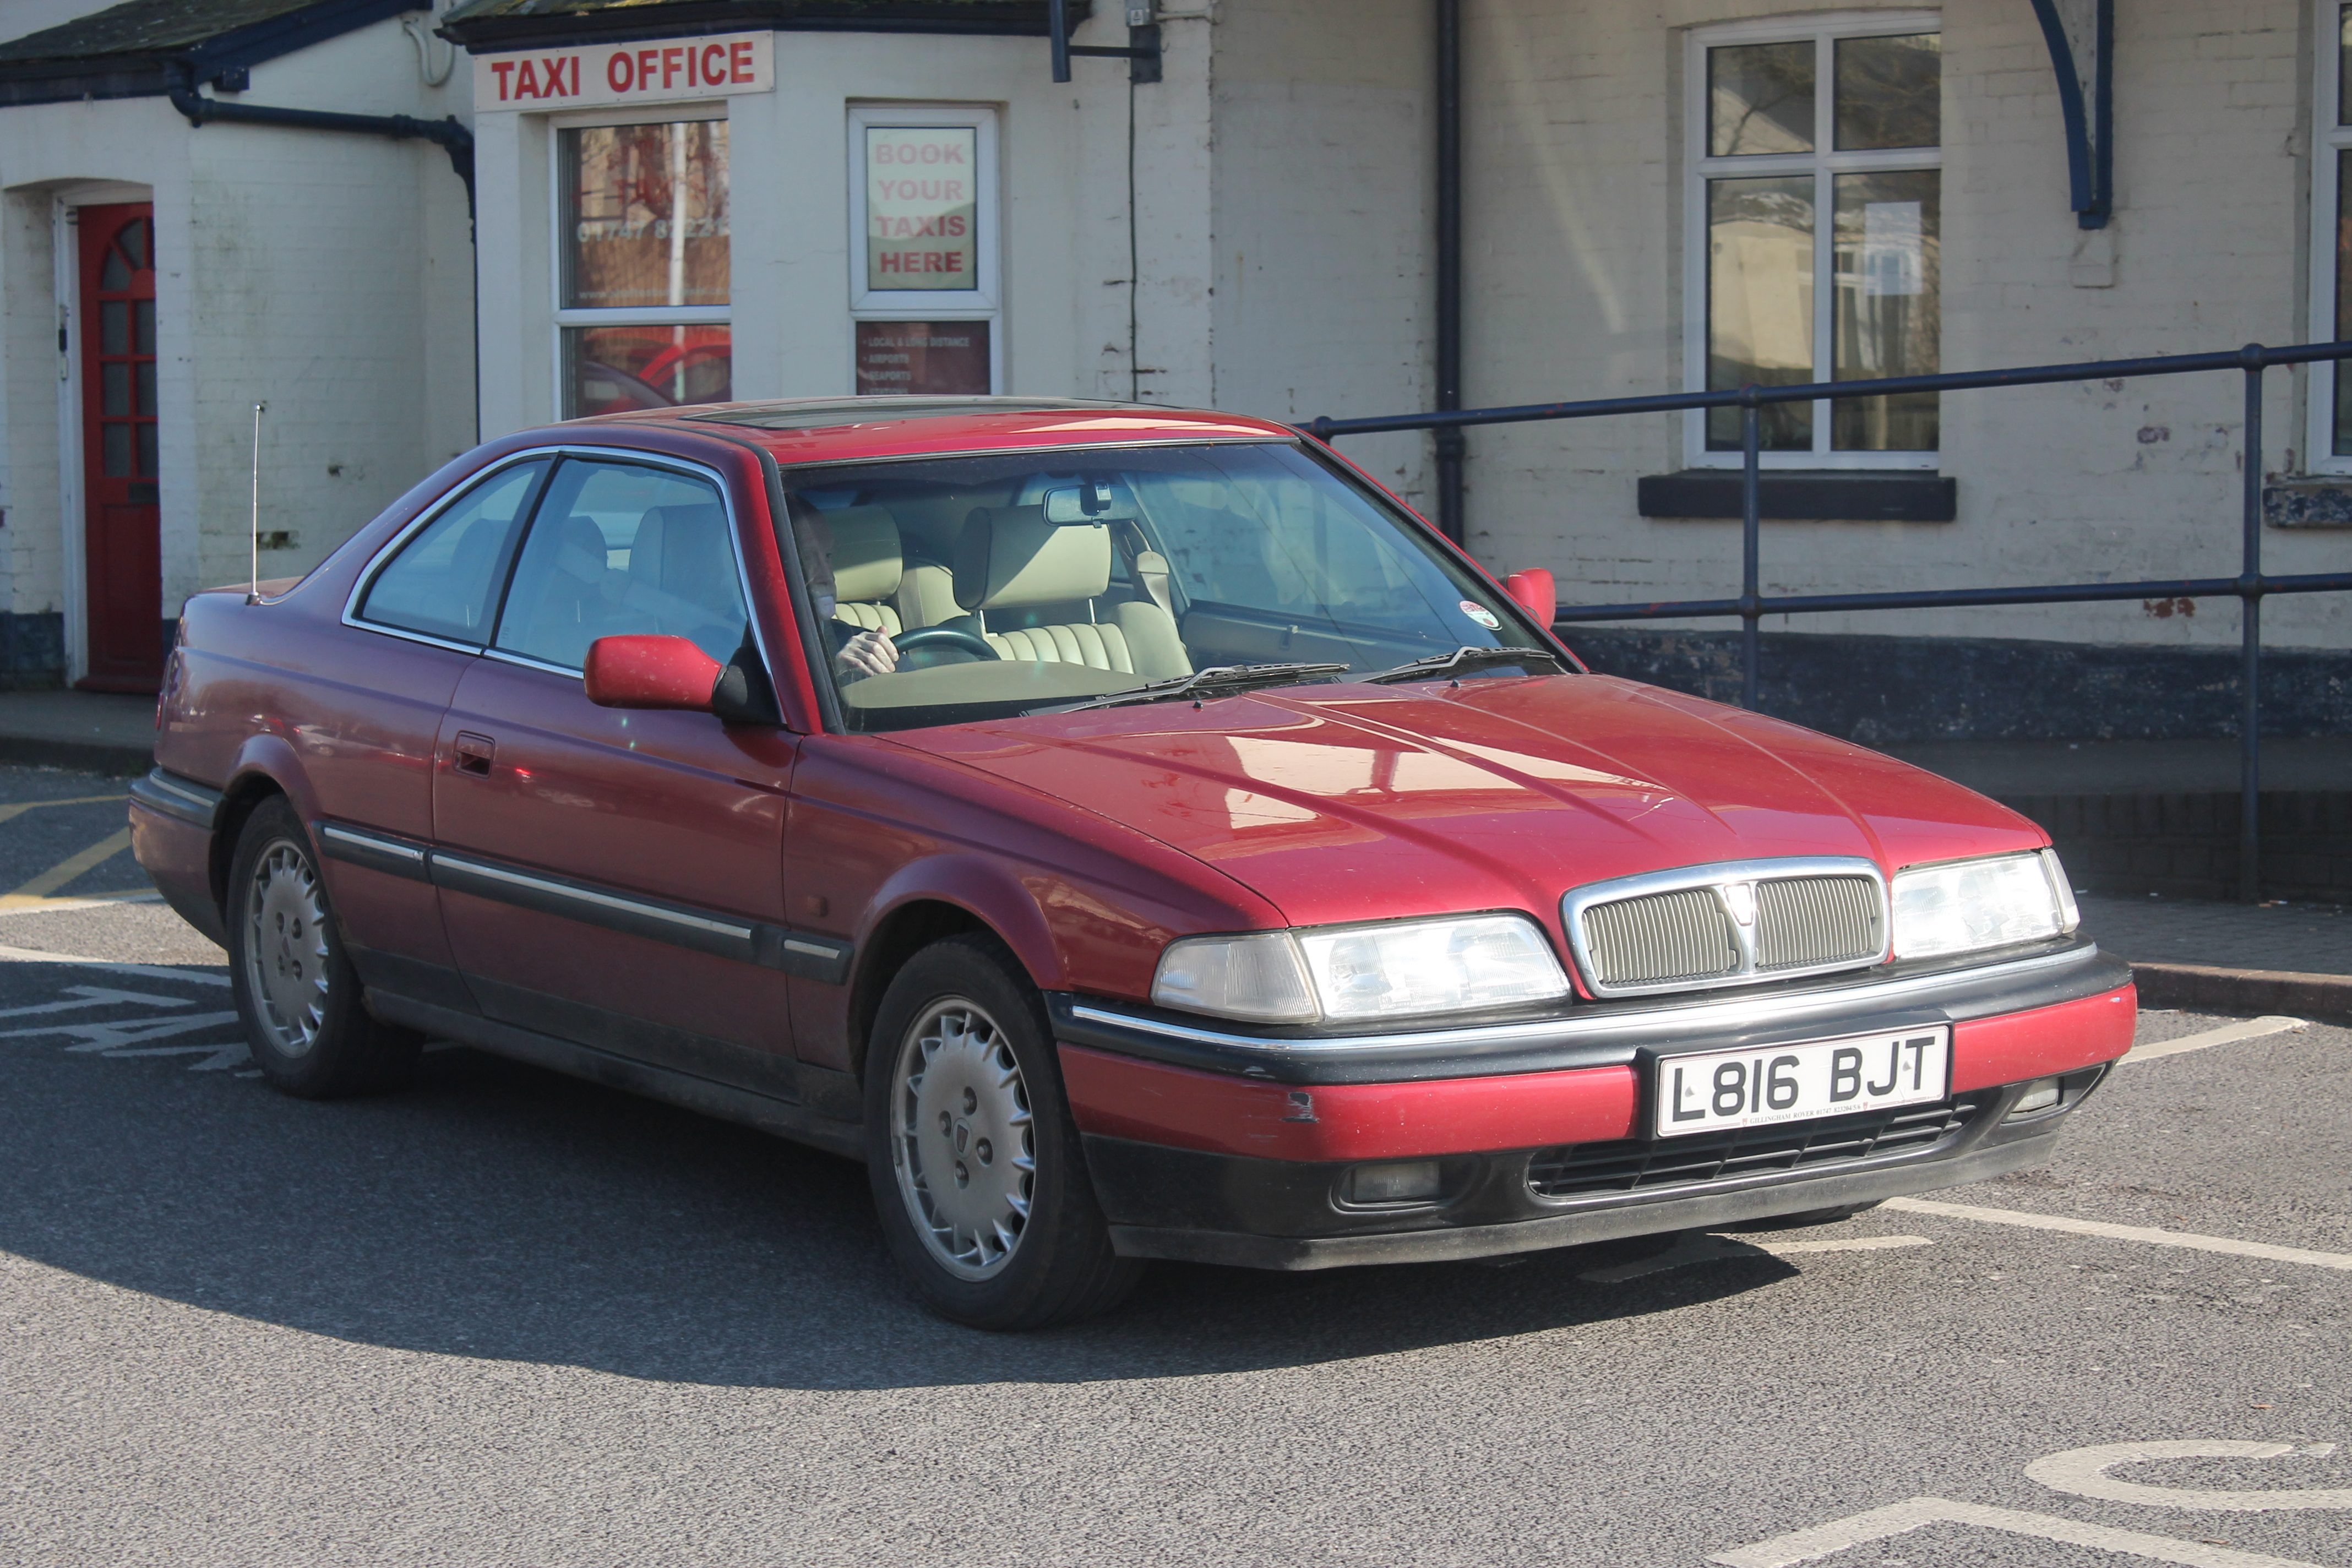 File:1993 Rover 827 Coupe (13388160573).jpg